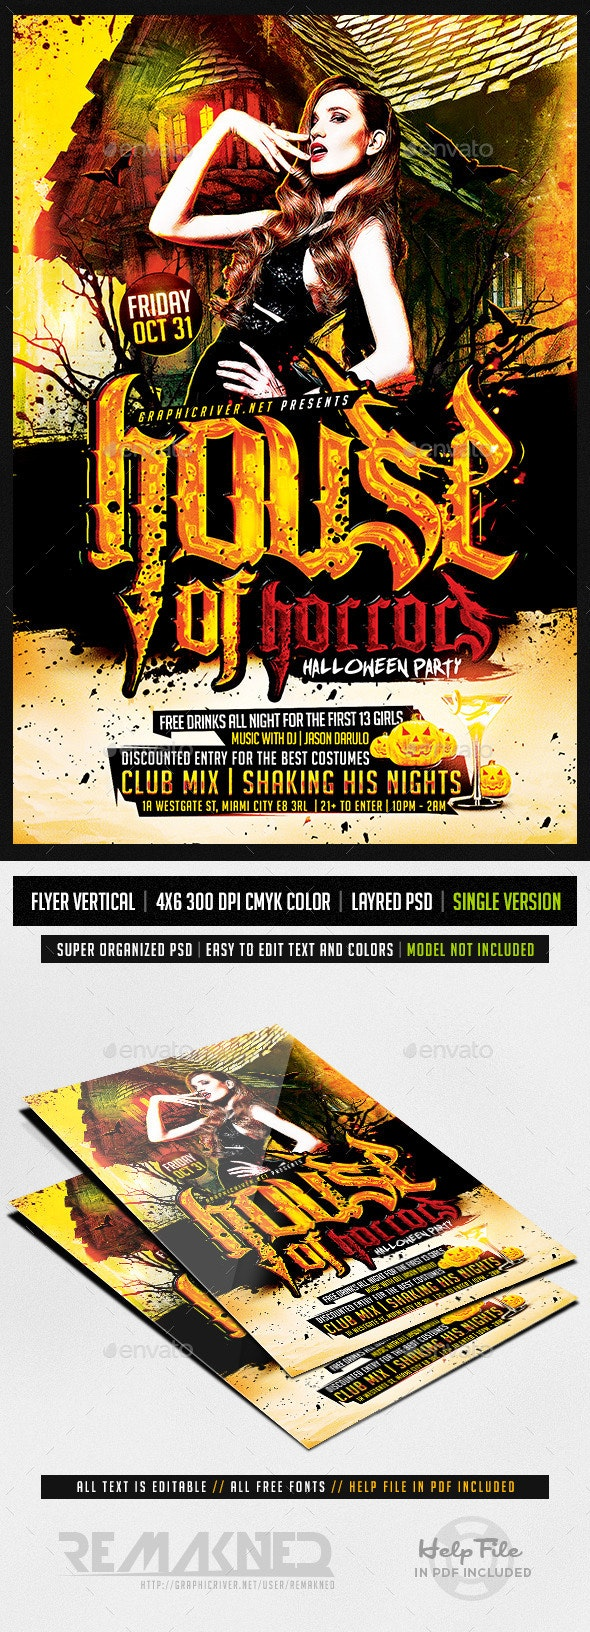 House Of Horros Party | Flyer Template PSD - Flyers Print Templates